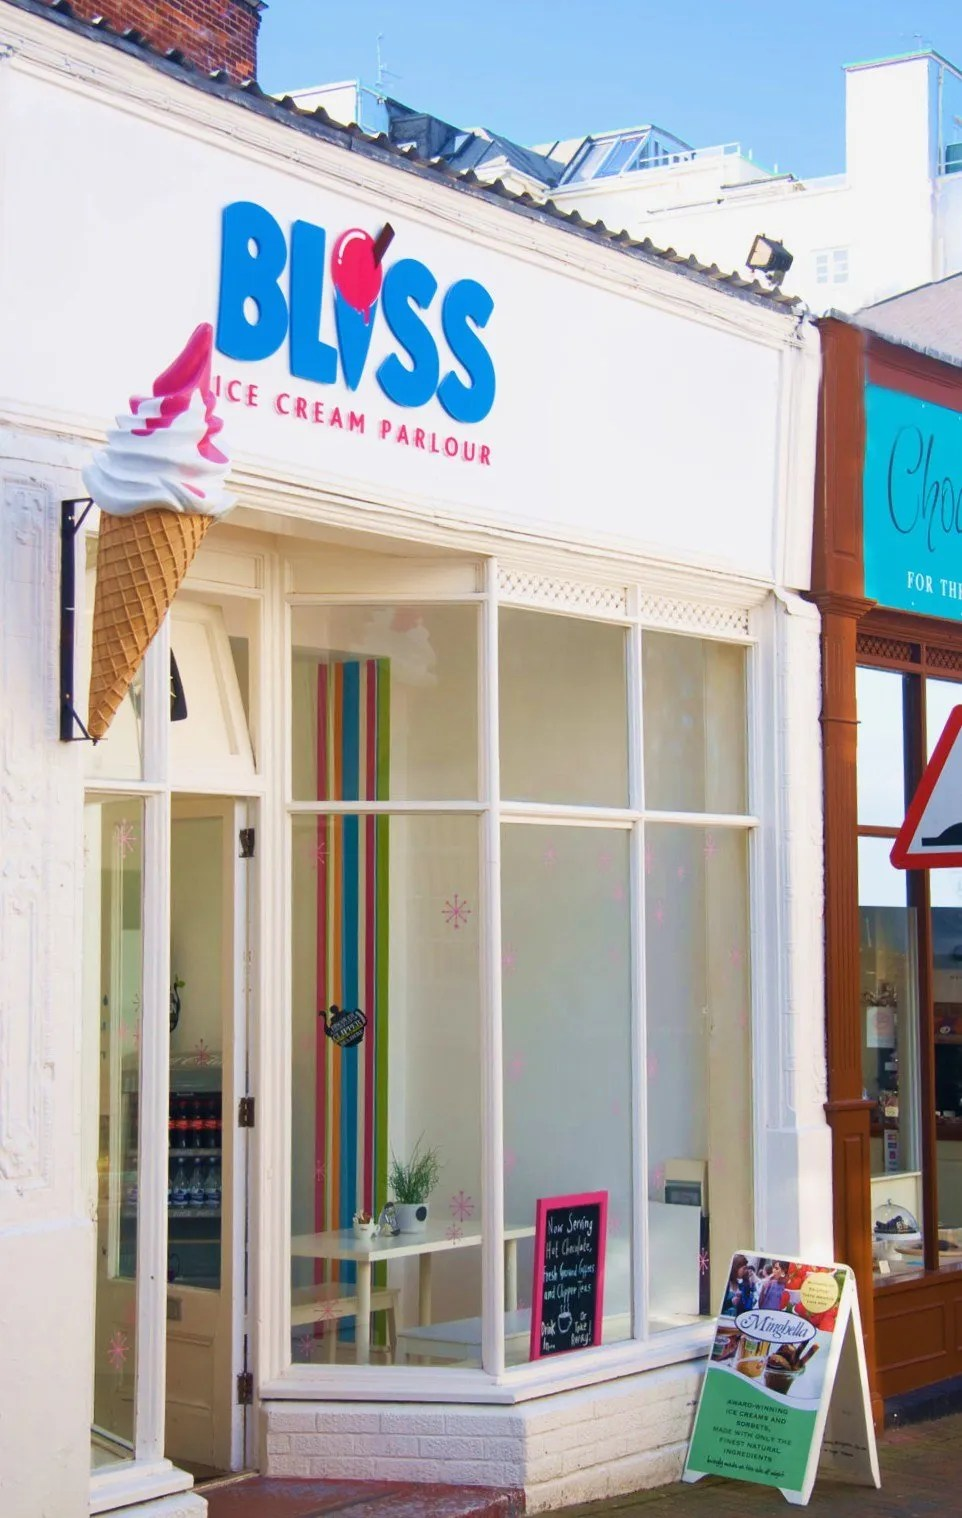 Bonza Confectionery - About Bliss Ice Cream Parlour 4